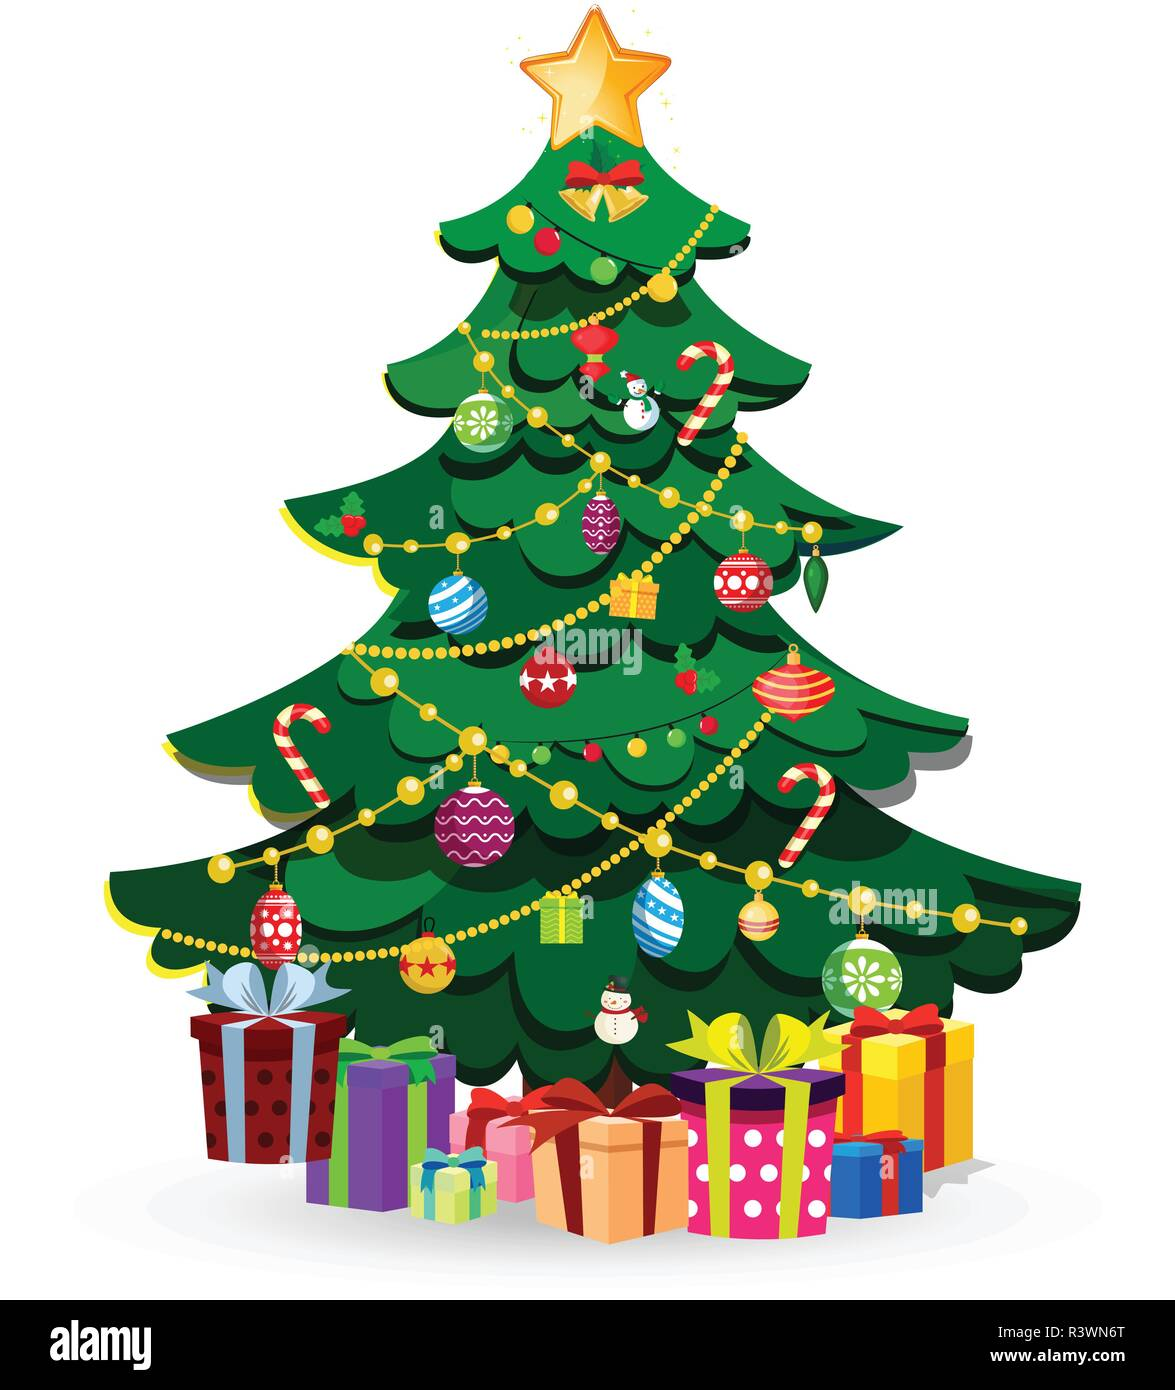 Picture Of Christmas Tree With Presents: Cute Cartoon Decorated Christmas Fir Tree With Many Gifts